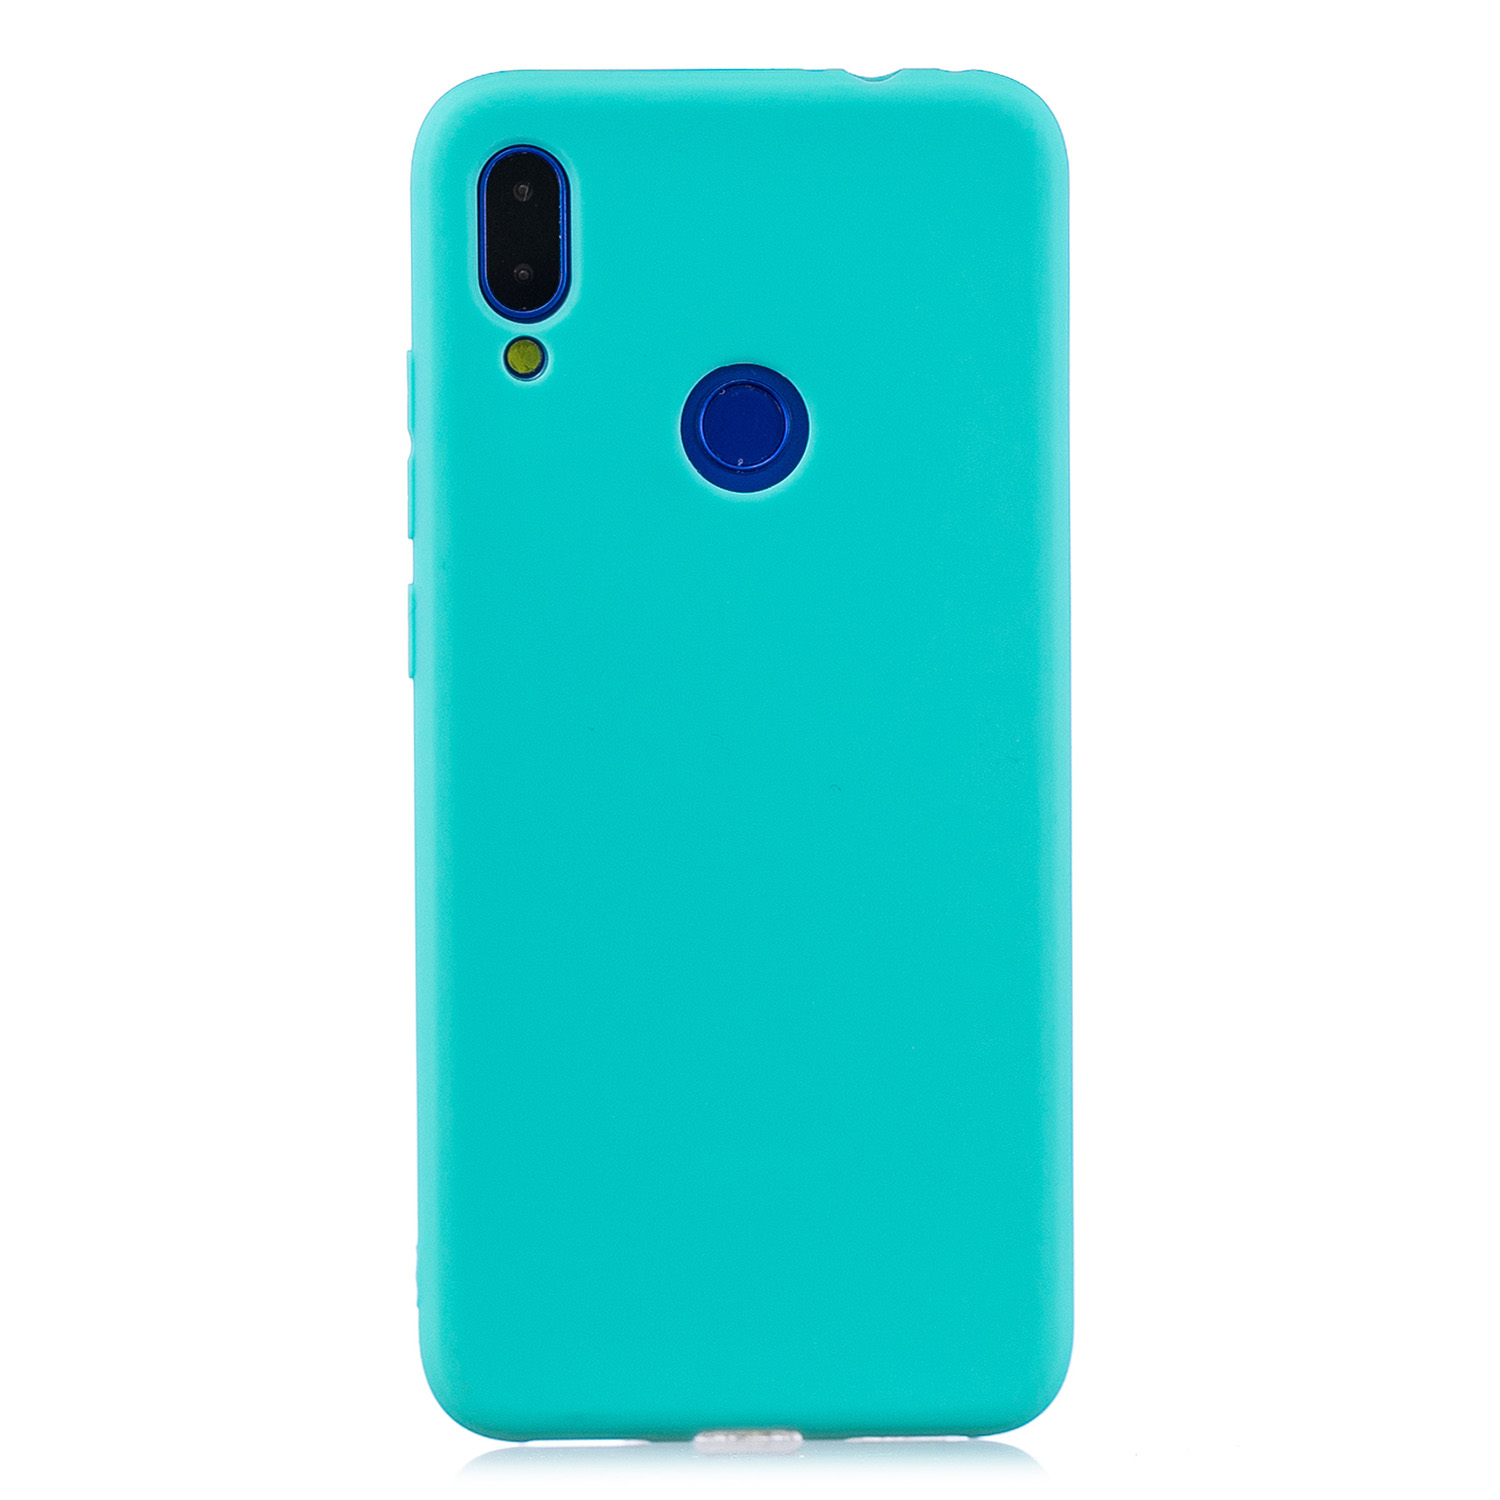 For Redmi note 7 Lovely Candy Color Matte TPU Anti-scratch Non-slip Protective Cover Back Case Light blue